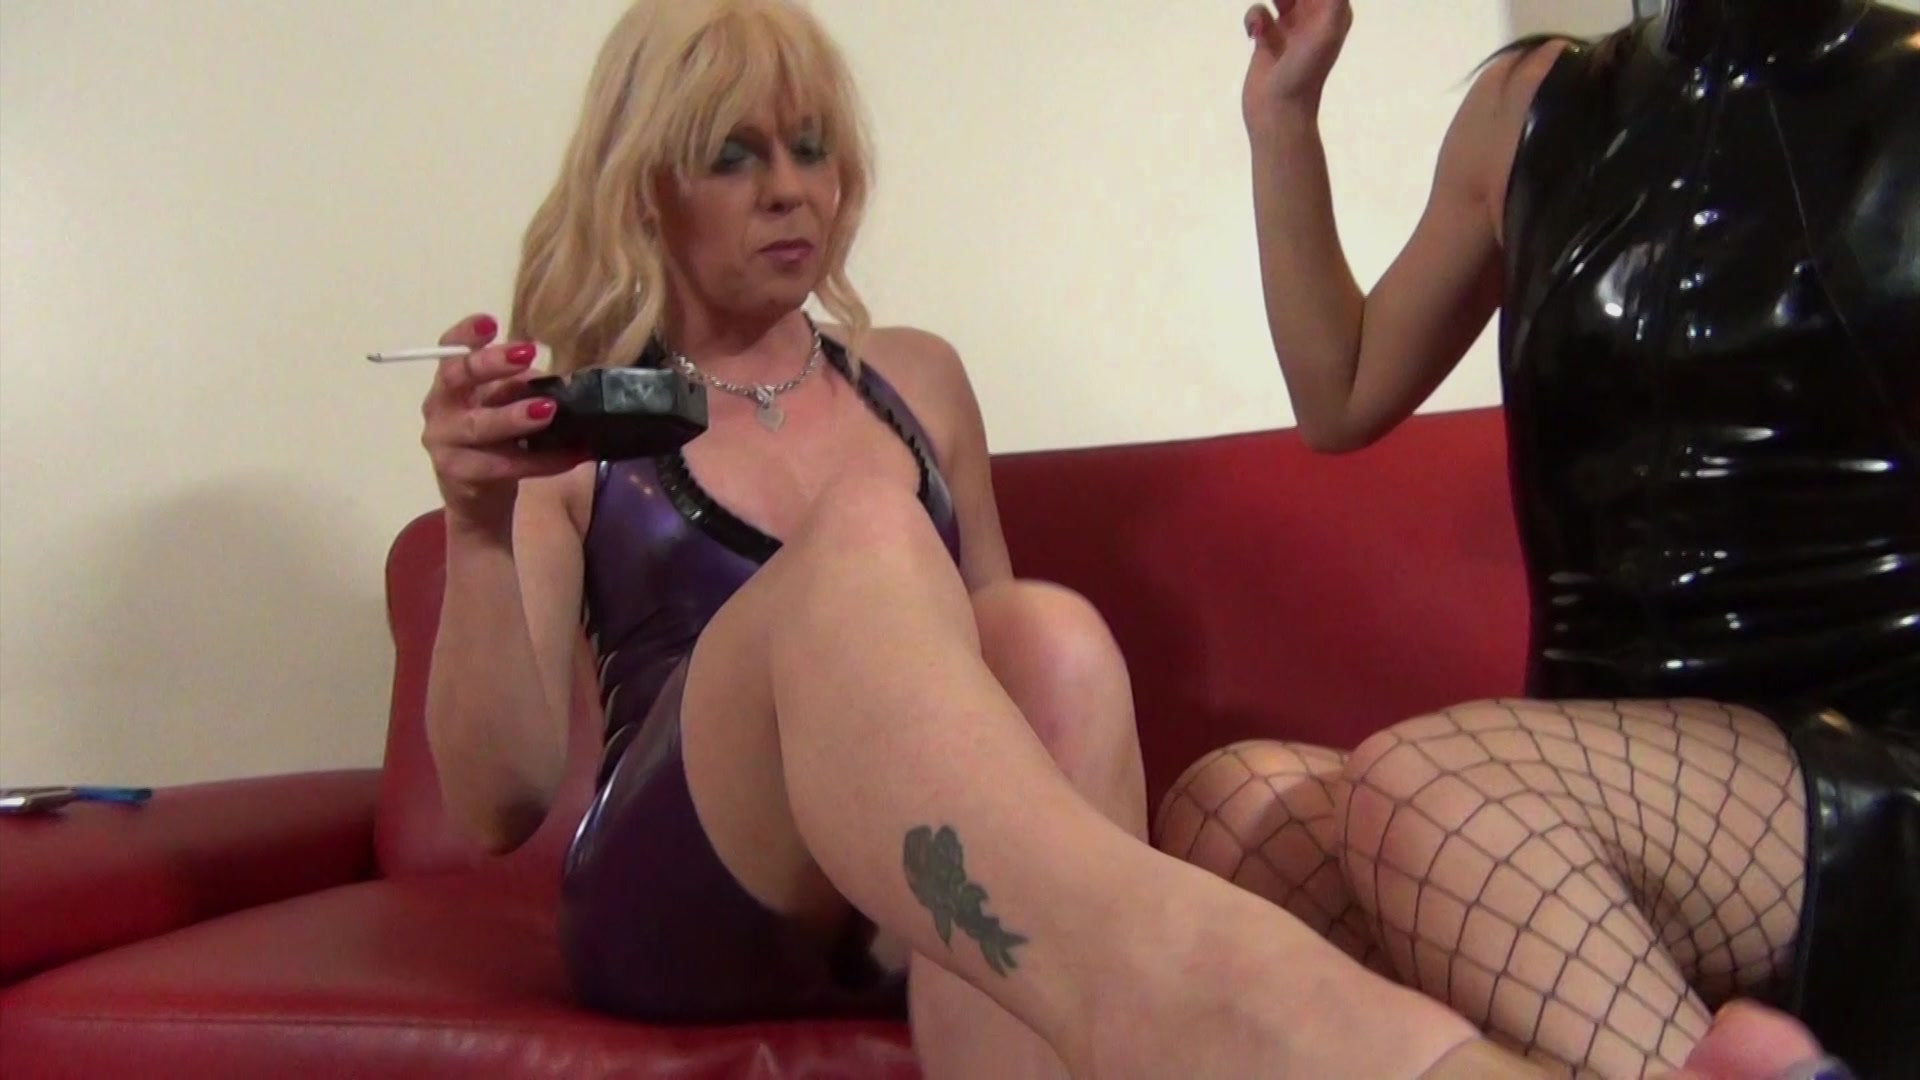 Ts Babe Joanna Jet Fucks A Hot Babe While She Gets Cock In The Ass From Joanna Jet The Trans Milf 7 Third World Media Adult Empire Unlimited